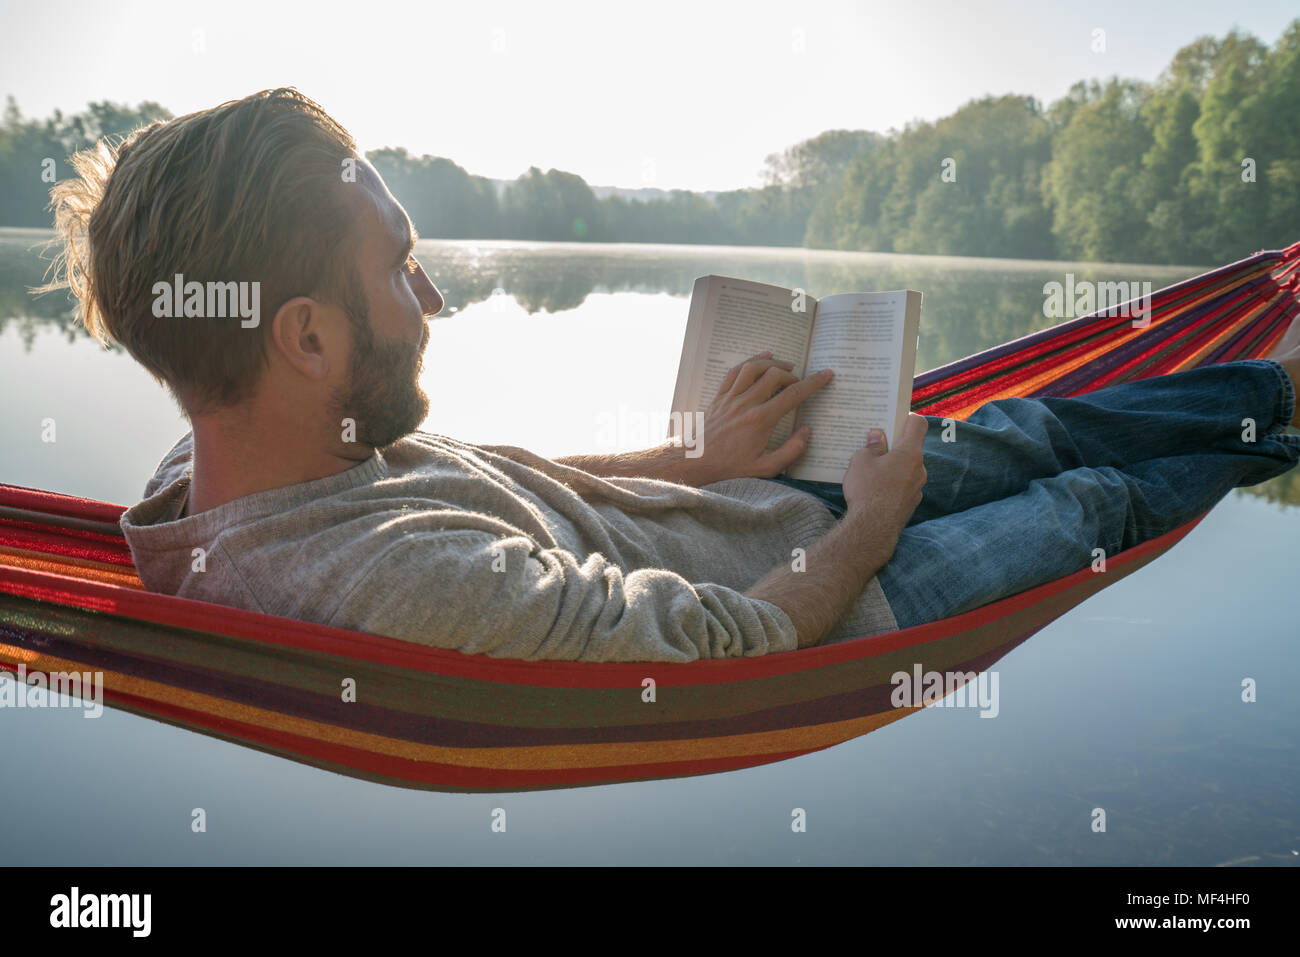 Young man on hammock by the lake in the morning reading a book, beautiful sunlight. People travel learning relaxation concept. Shot in France, Europe Stock Photo